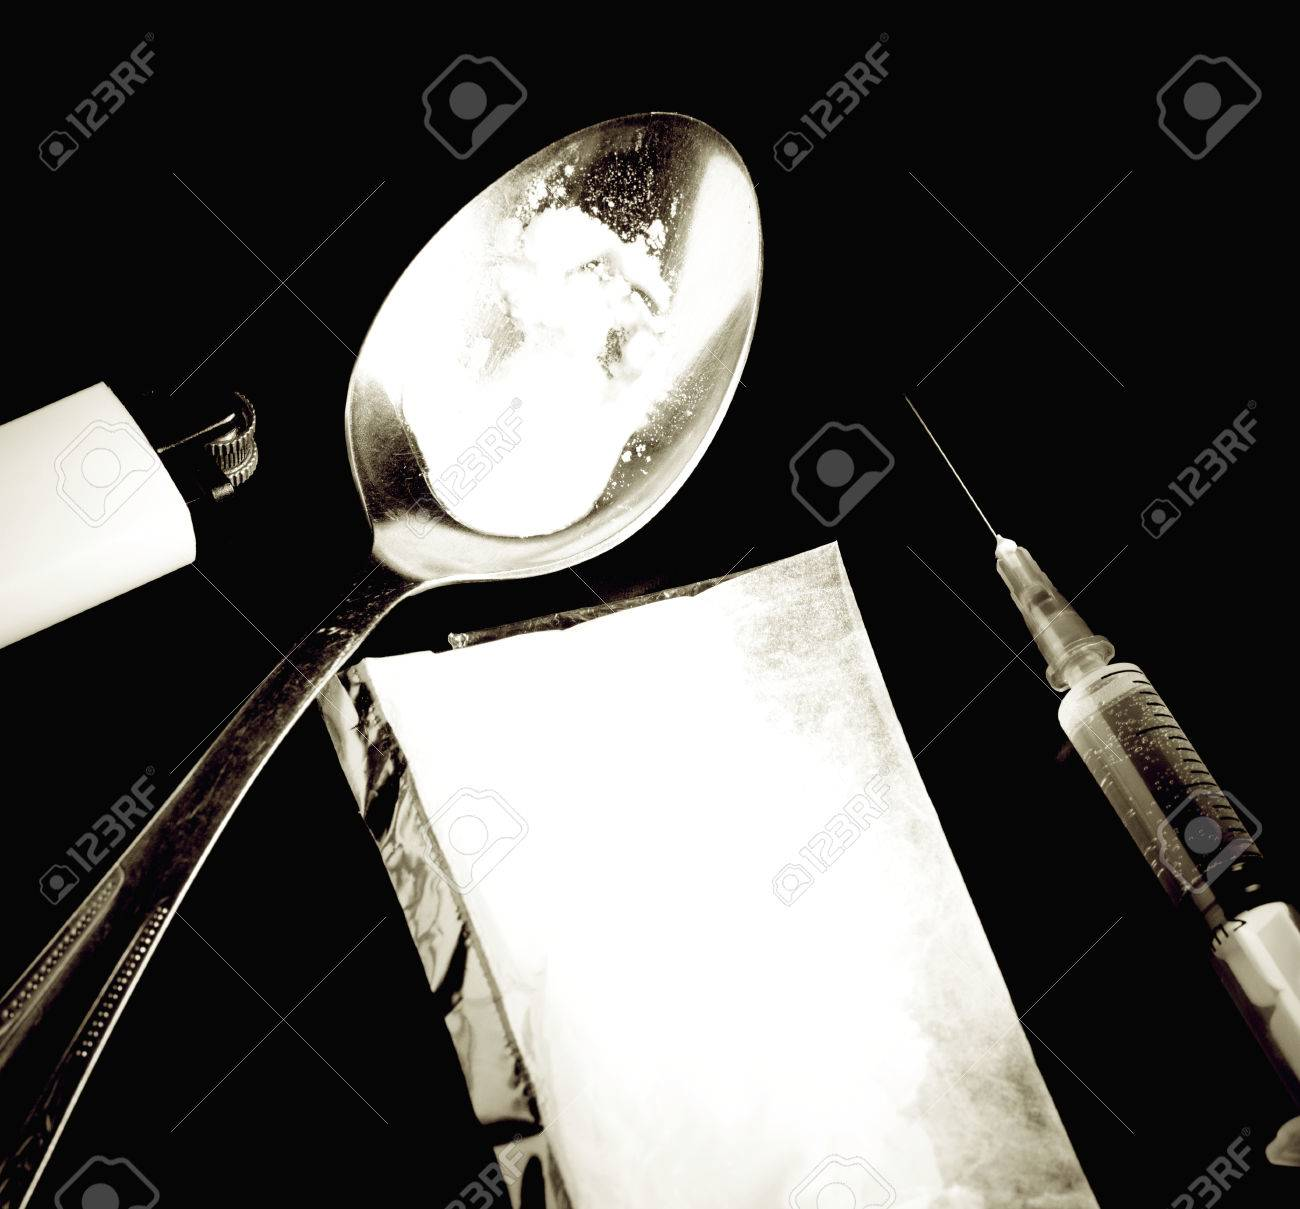 cooked heroin with syringe and cocaine sack Stock Photo - 26274584